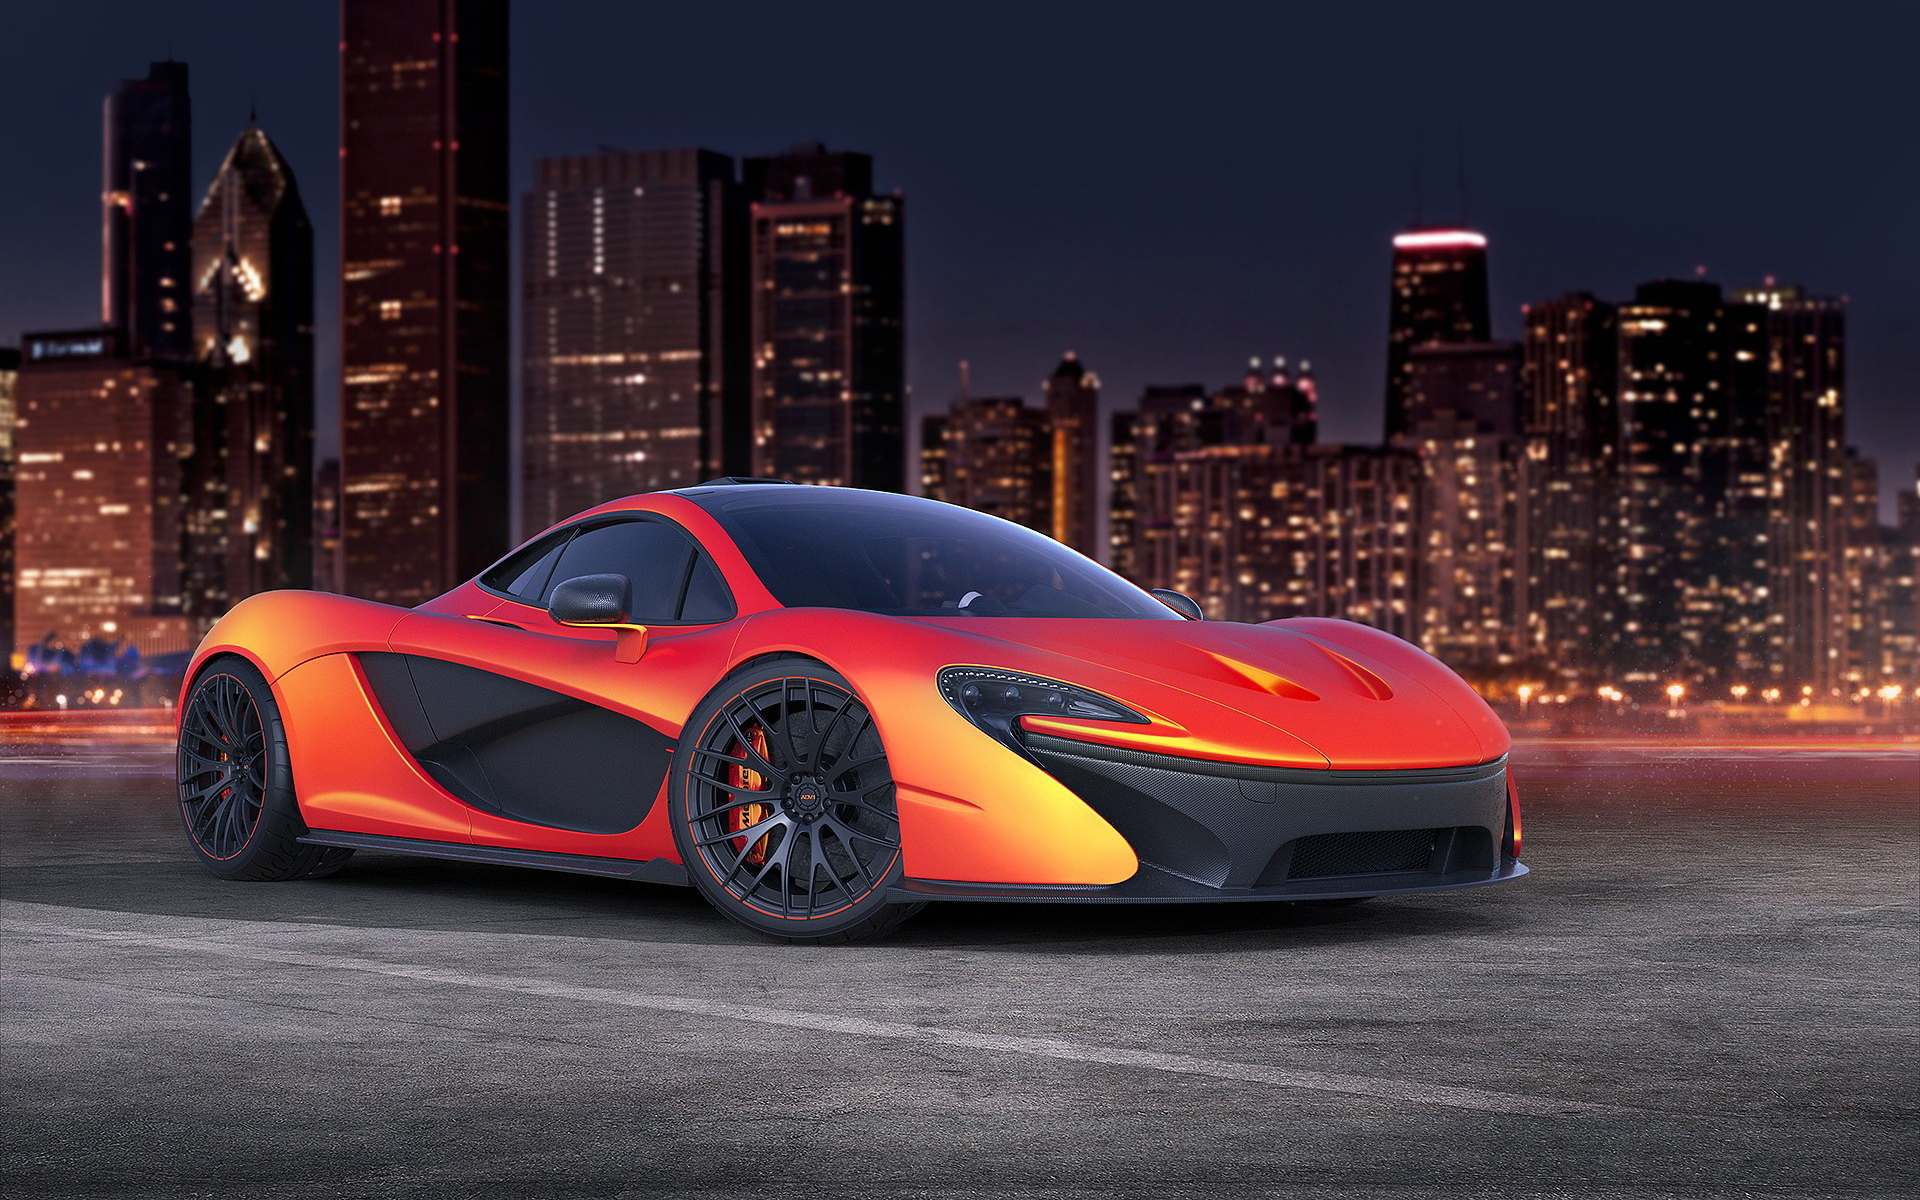 image mclaren p1 orange cars skyscrapers cities 1920x1200